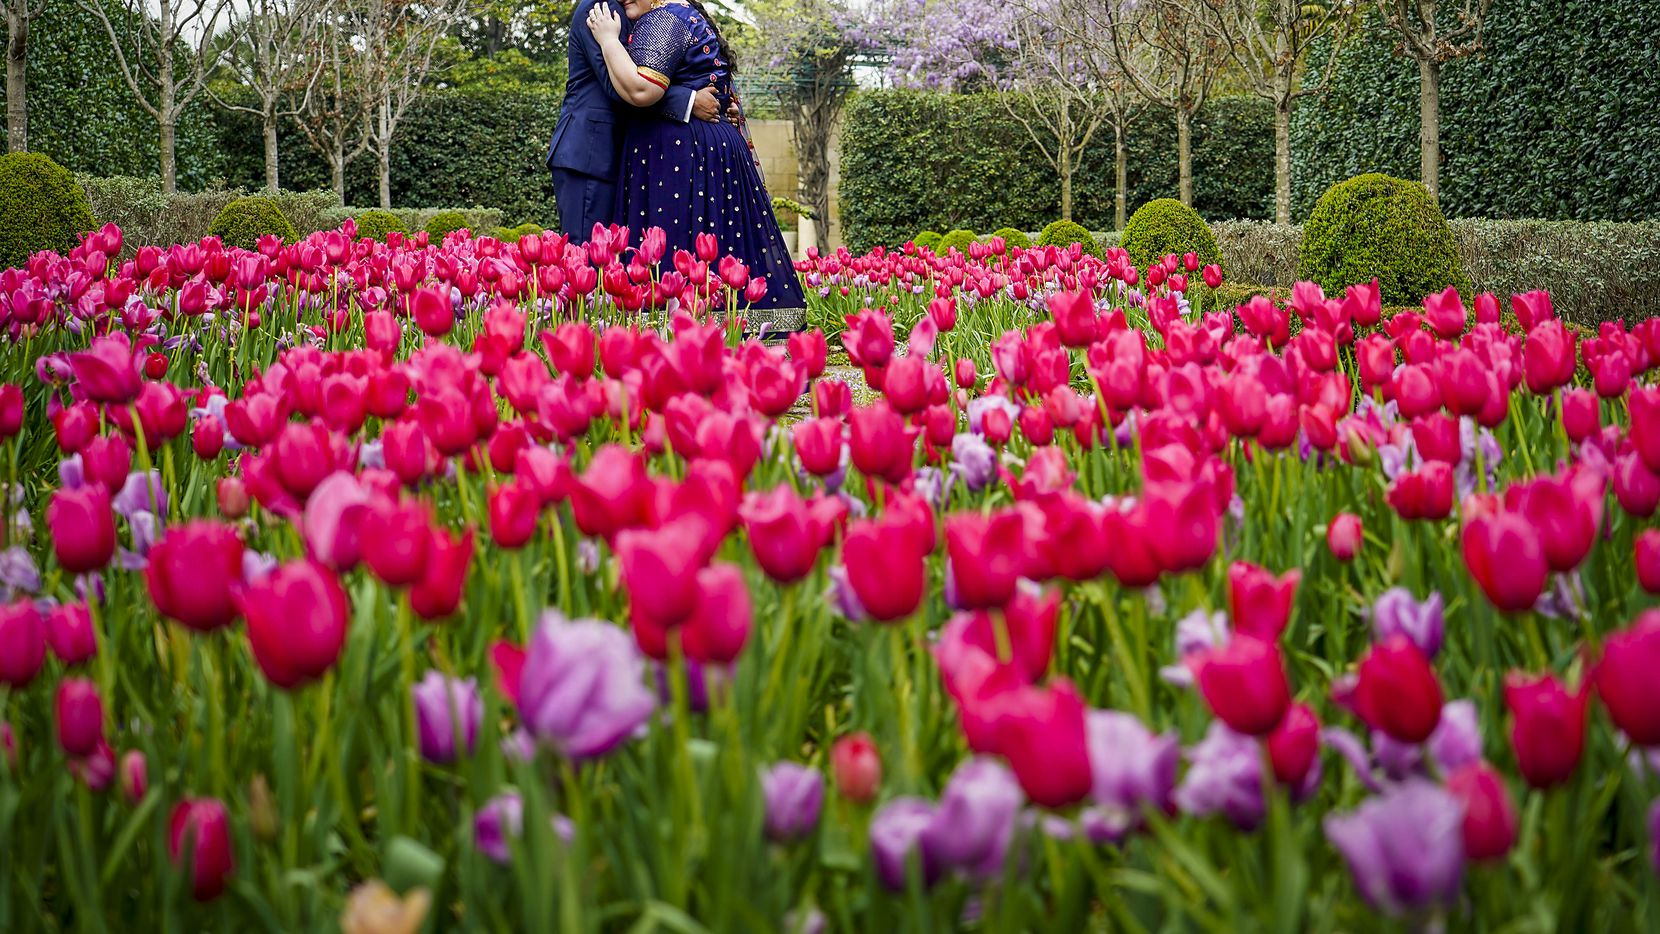 Newlyweds Laura Remson and Abhishek Ravi pose for their wedding photos after being married at the Dallas Arboretum.